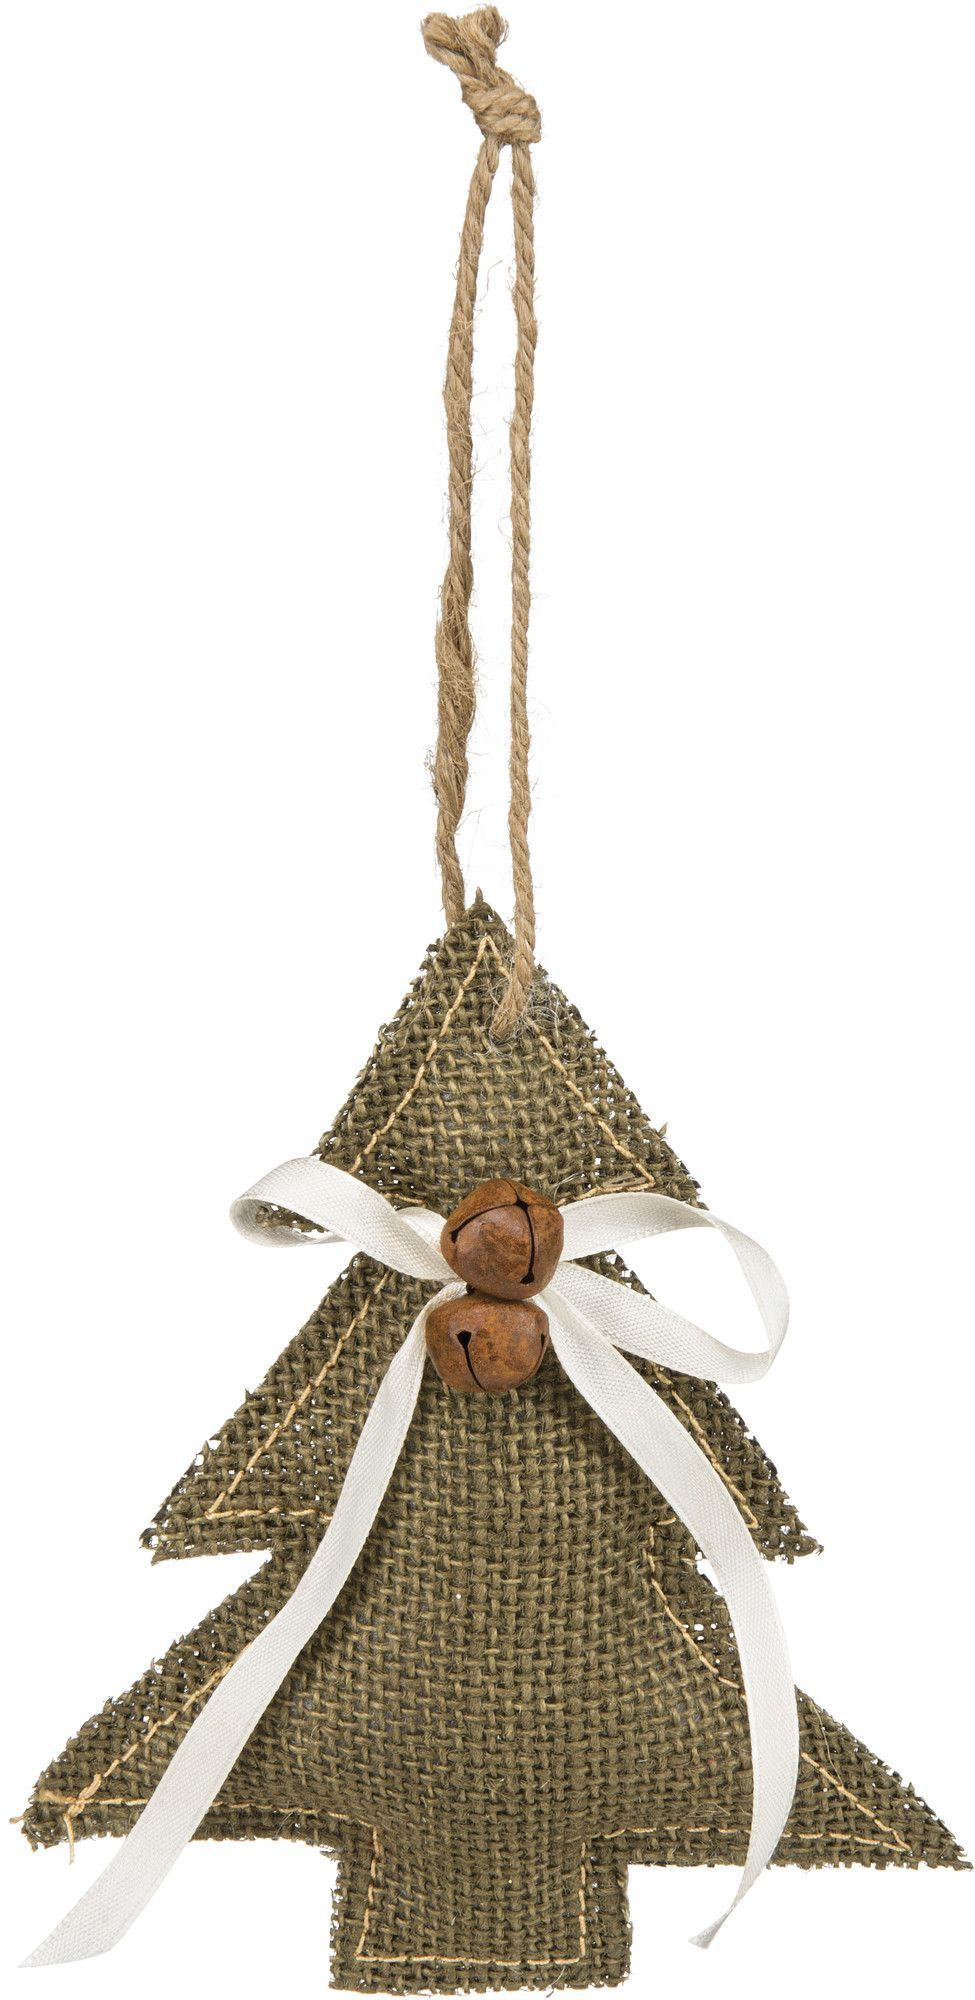 burlap christmas tree ornament with white ribbon jingle bells and